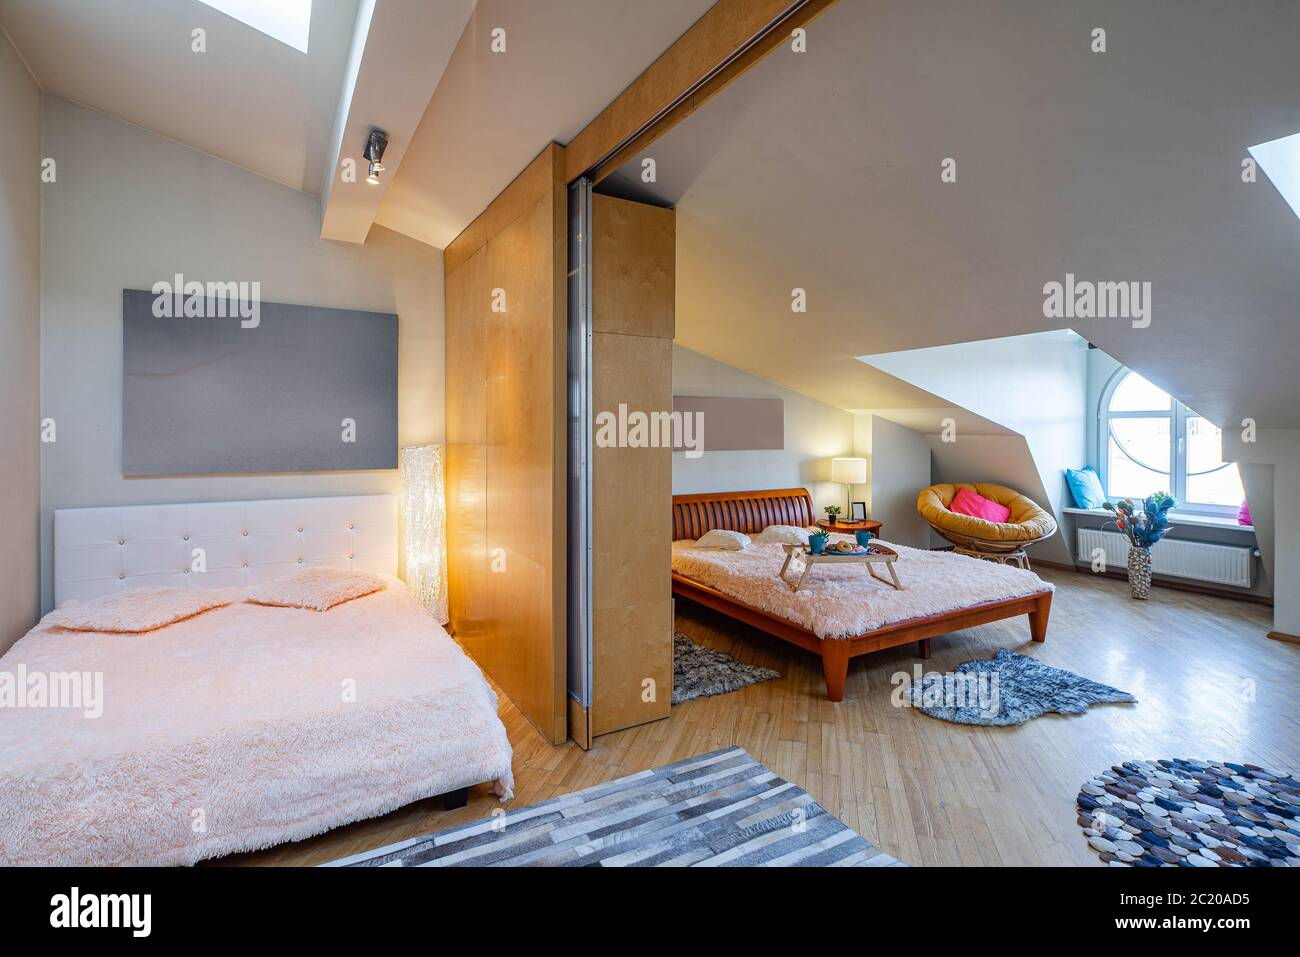 Modern Interior Of Spacious Bedroom With Two Beds Luxury Apartment Roof Windows Wooden Furniture Zoning Stock Photo Alamy